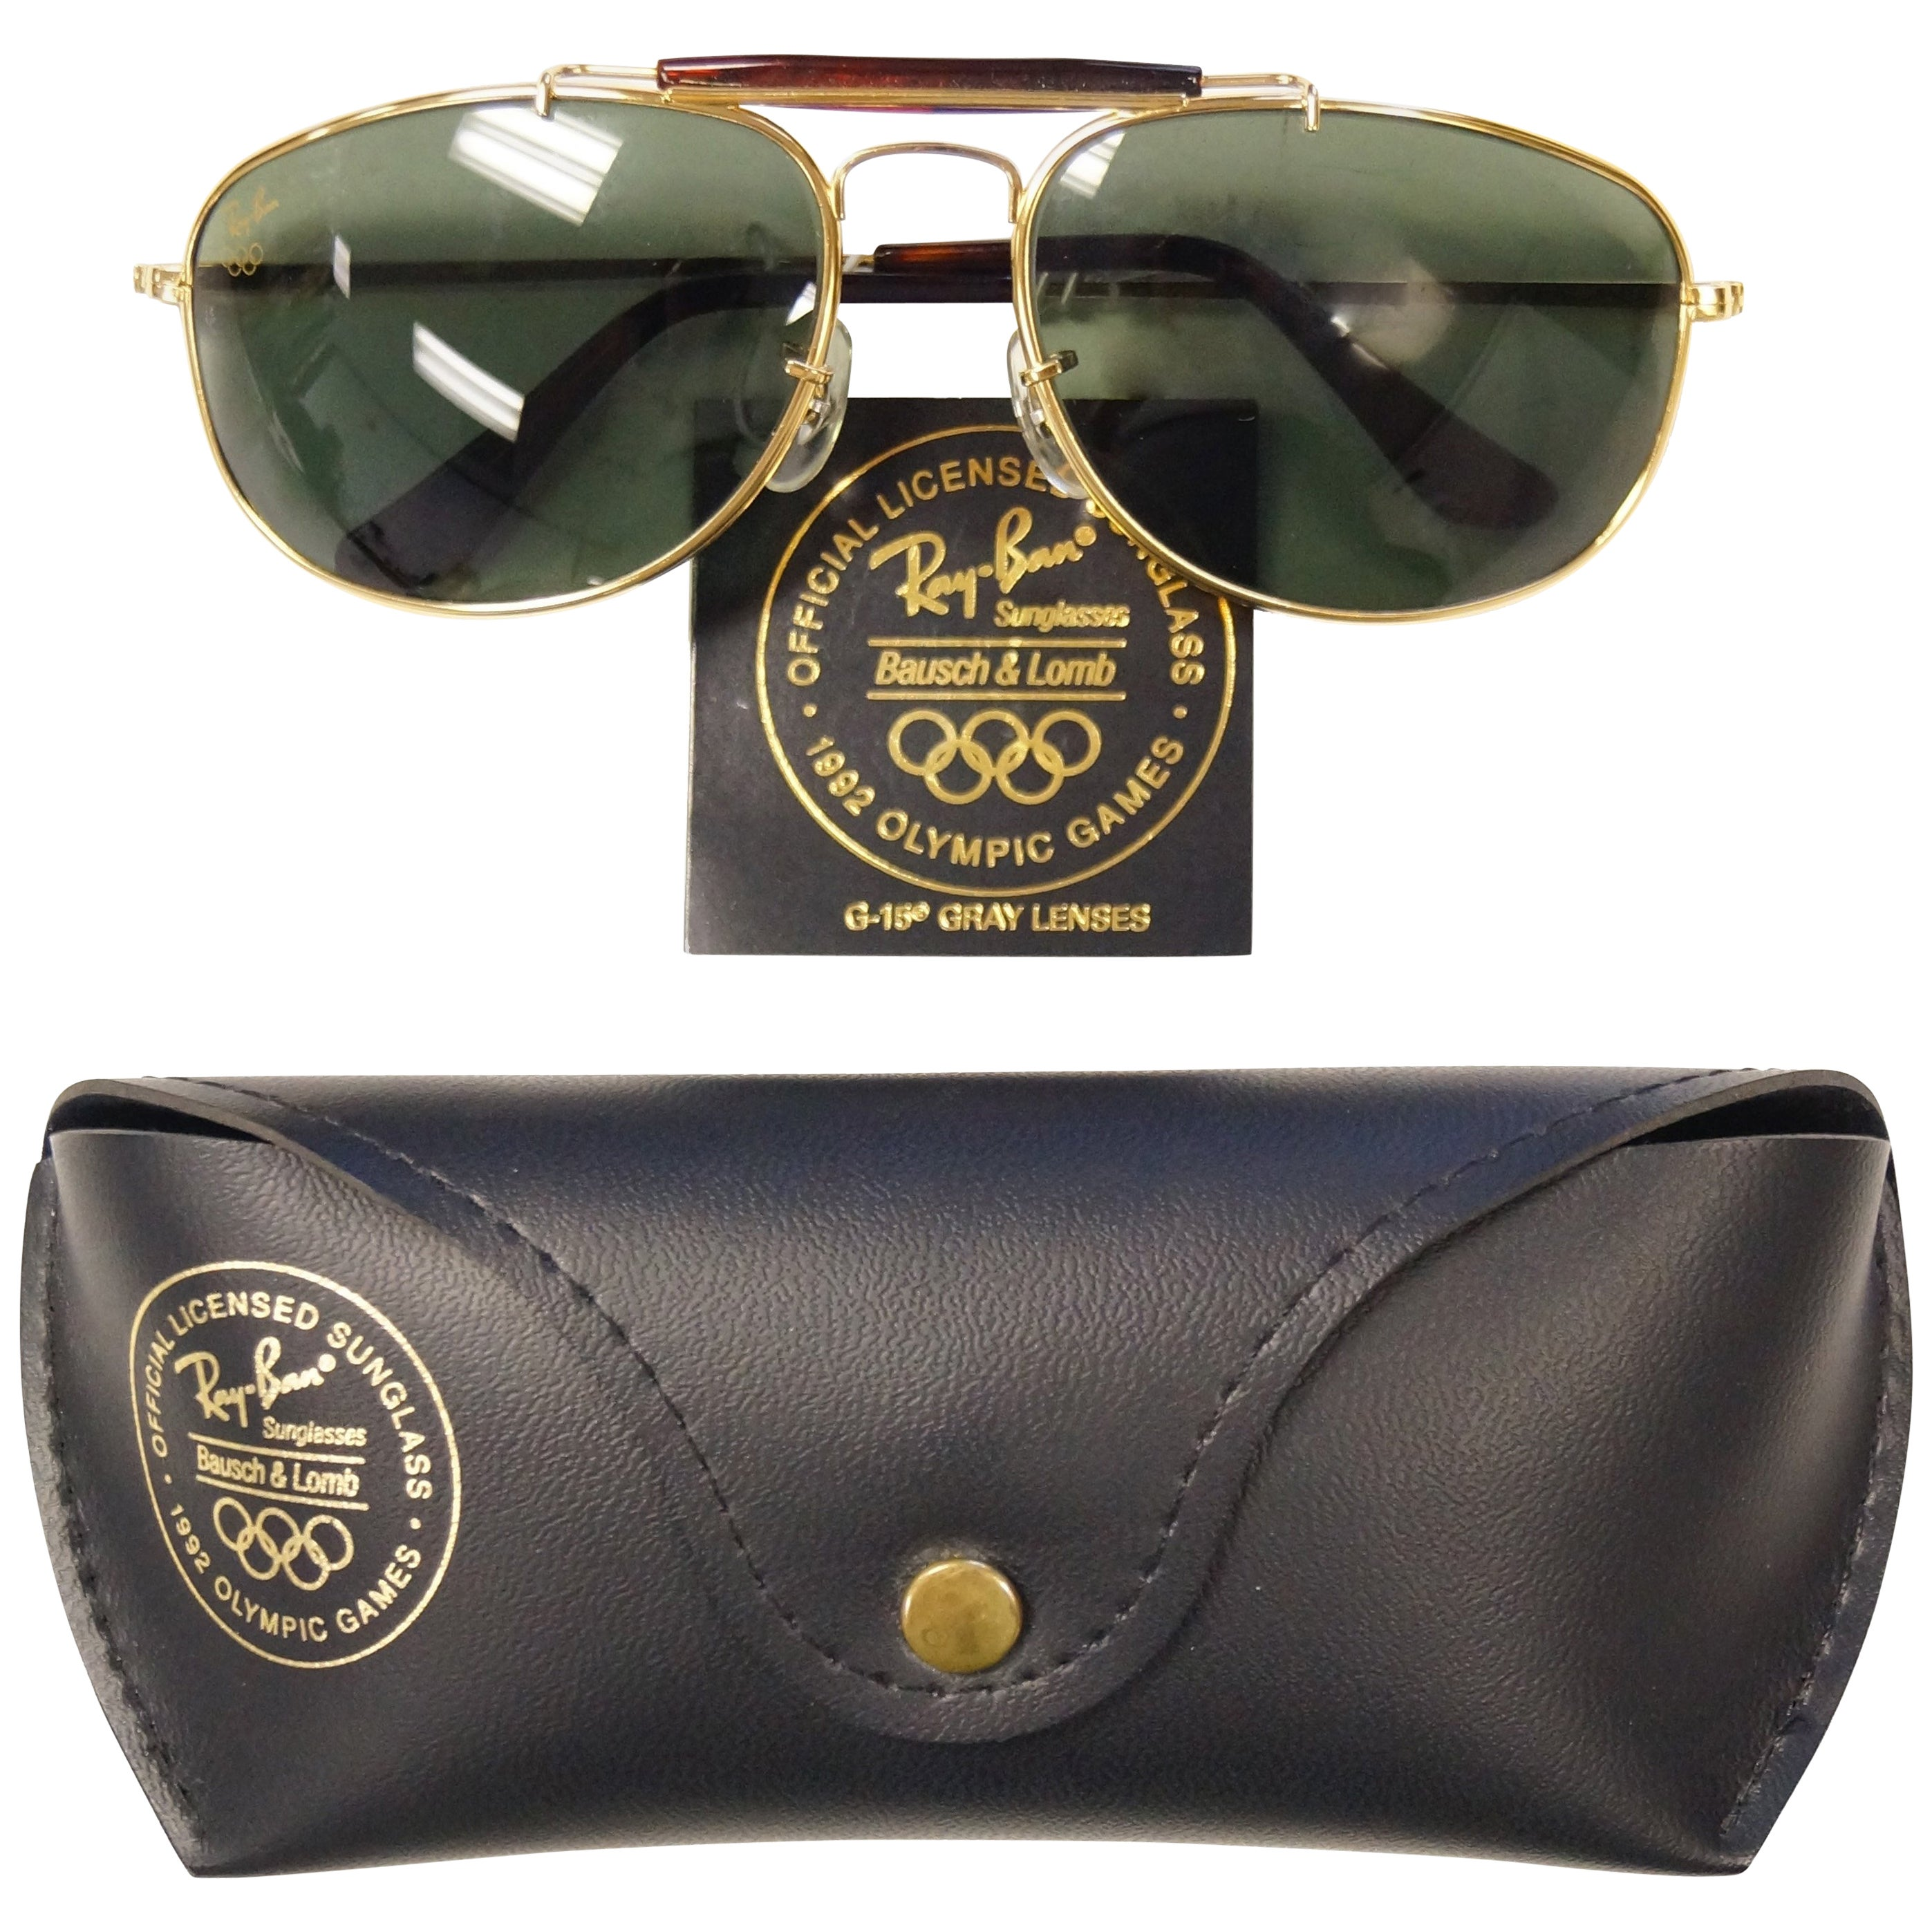 1b51c48b32 Bausch and Lomb Ray-Ban Olympic Edition Sunglasses